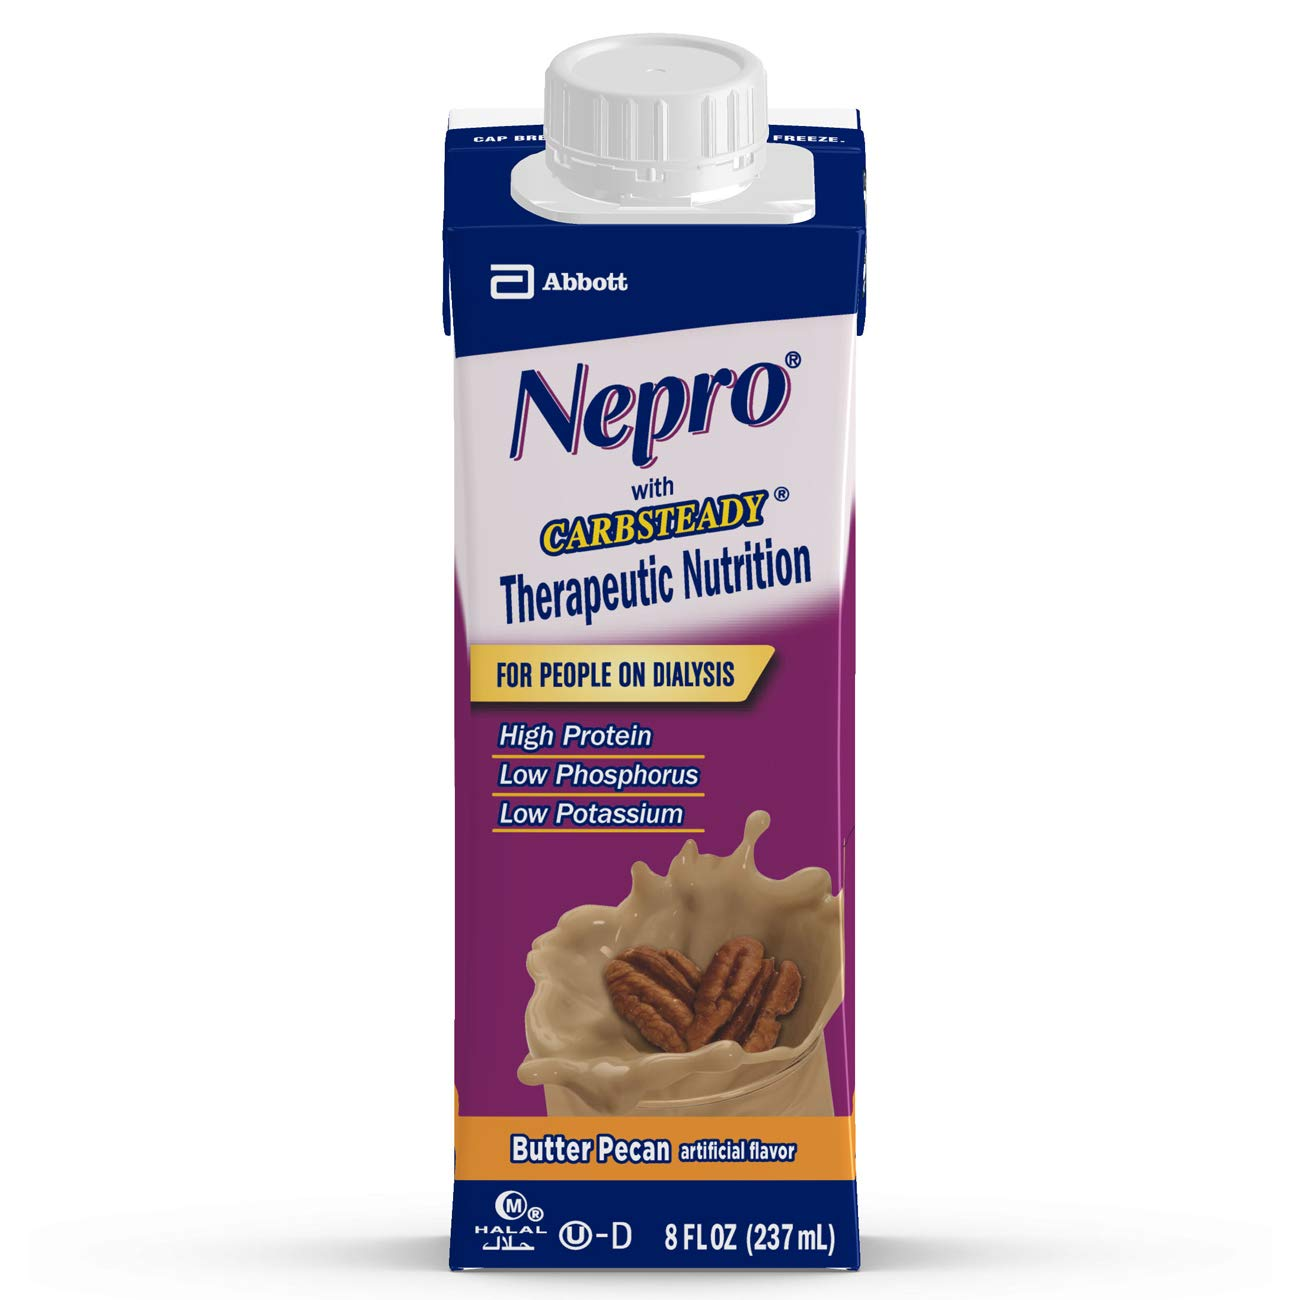 Nepro Therapeutic Nutrition Shake with 19 grams of protein, Nutrition for people on Dialysis, Butter Pecan, 8 fl ounces, (Pack of 24)